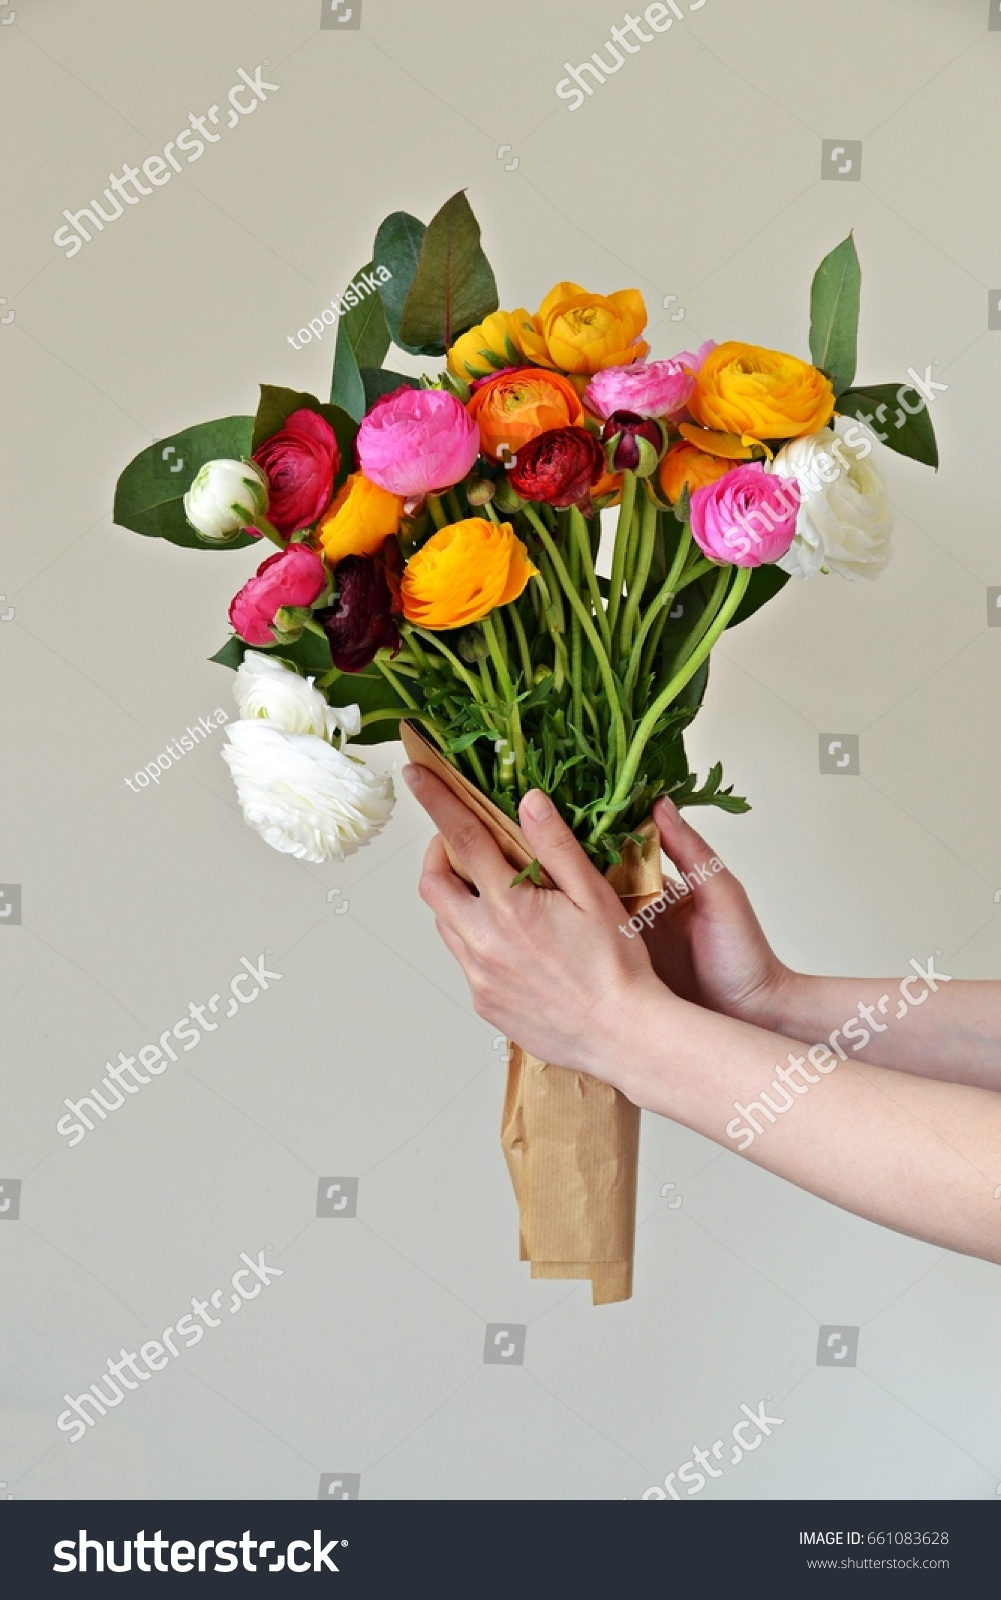 Ranunculus Flower Bouquet Hand On White Stock Photo & Image (Royalty ...